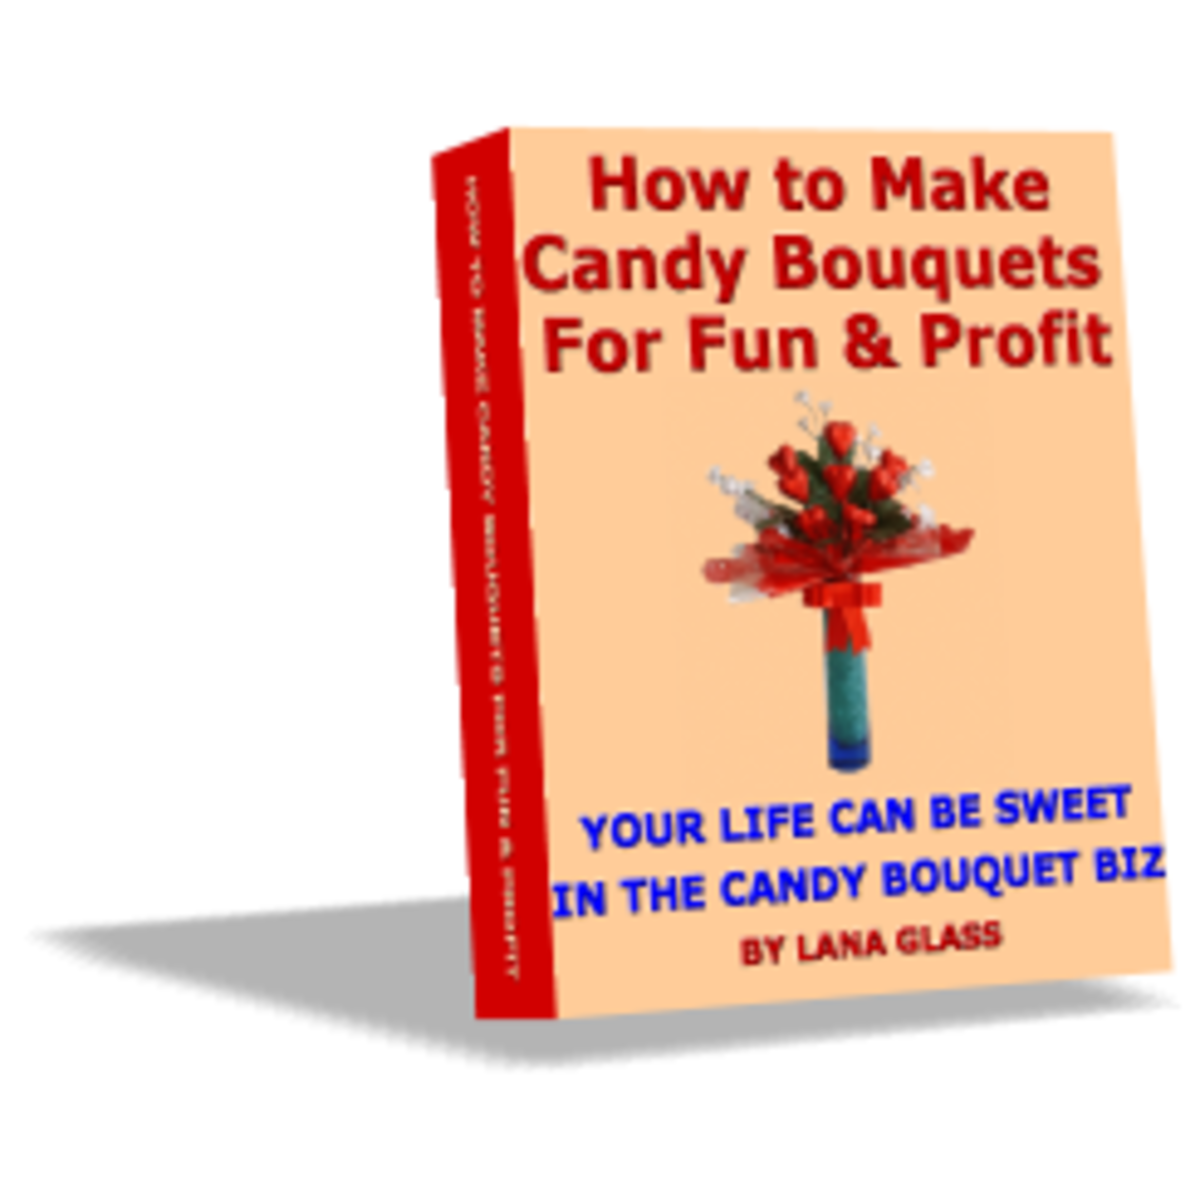 Mothers Can Make Money From Home Making Candy Bouquets